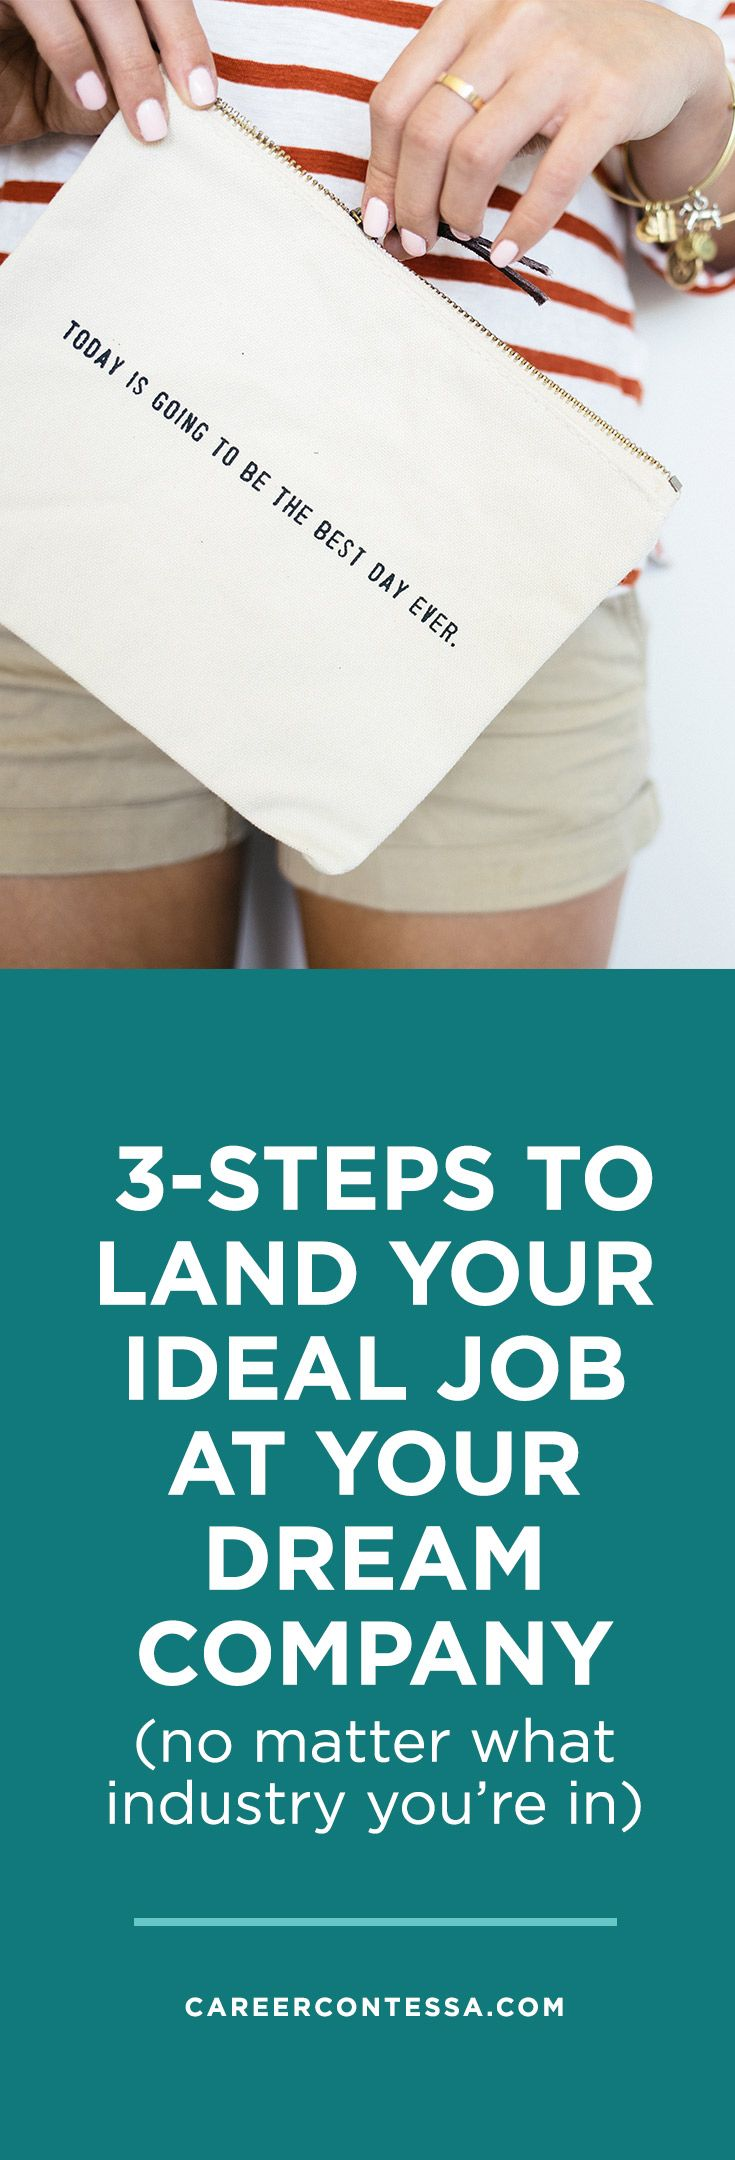 For most people, the idea of finding a new job or switching careers is an enjoyable as putting together IKEA furniture. Stop torturing yourself and feeling hopeless because I'll teach you the best job search strategy you haven't tried already. Don't forget that being happy in your job is almost the most important factor for your long-term success.